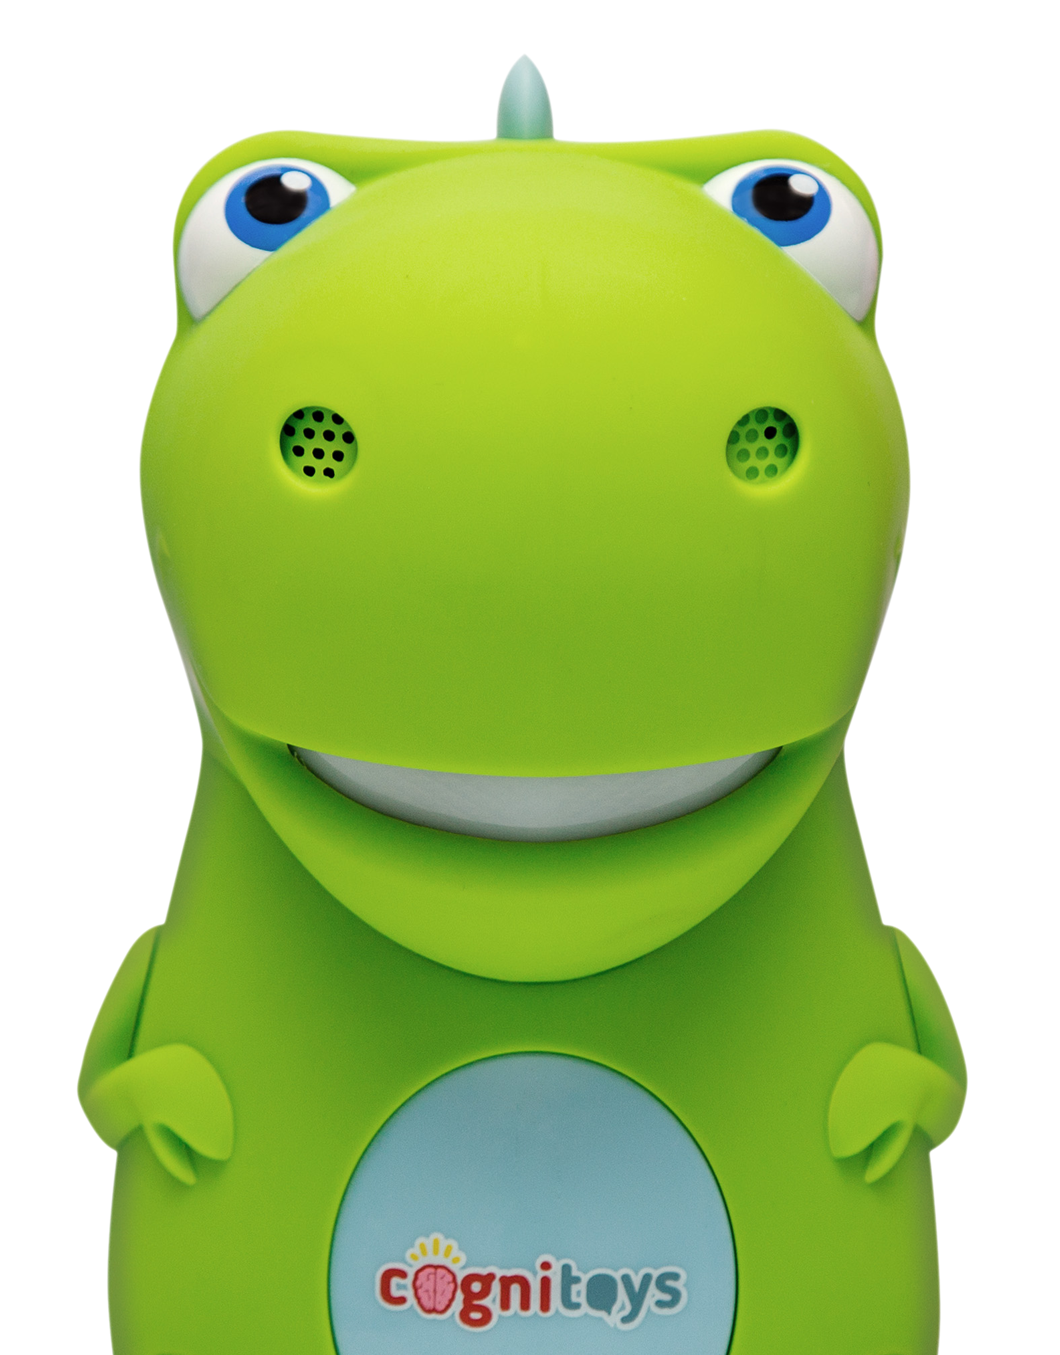 The CogniToys dinosaur.